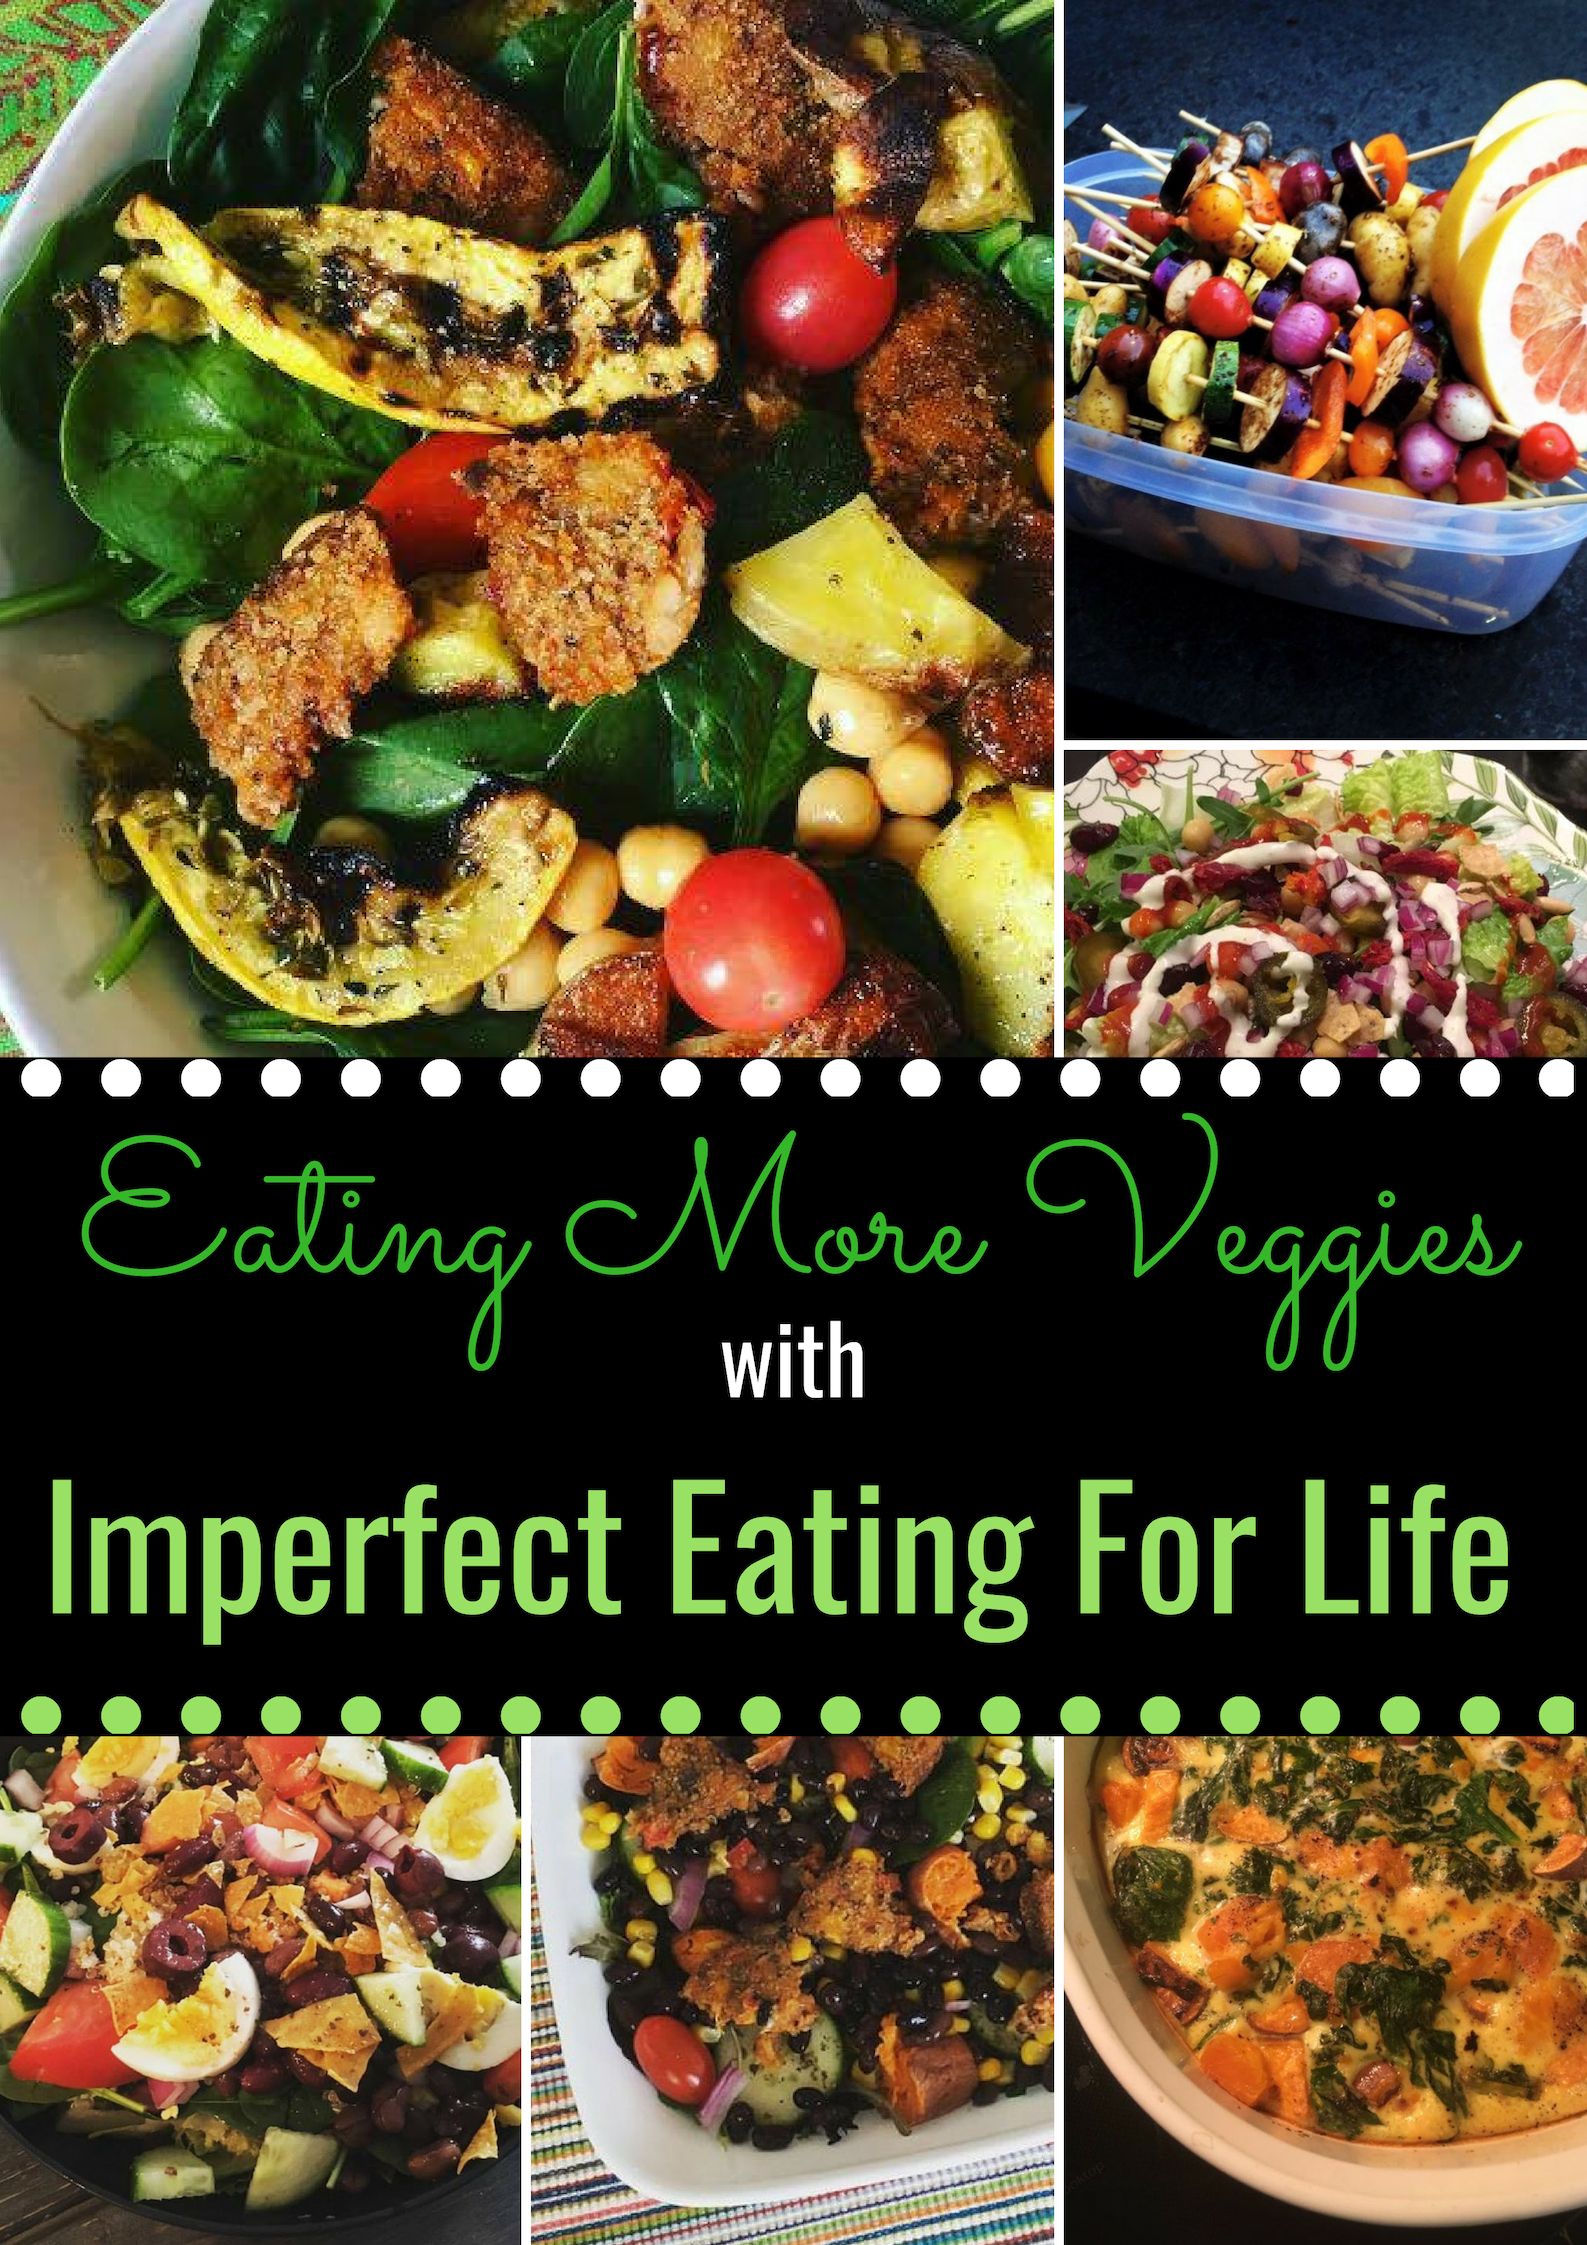 The 3Ps of Imperfect Eating say to eat more PLANTS! - Why? Veggies help us feel full, the fiber expands in our stomachs, the chewing slows down a meal and helps extend a meal to 20 minutes, and they energize us.Click here to grab your copy here.